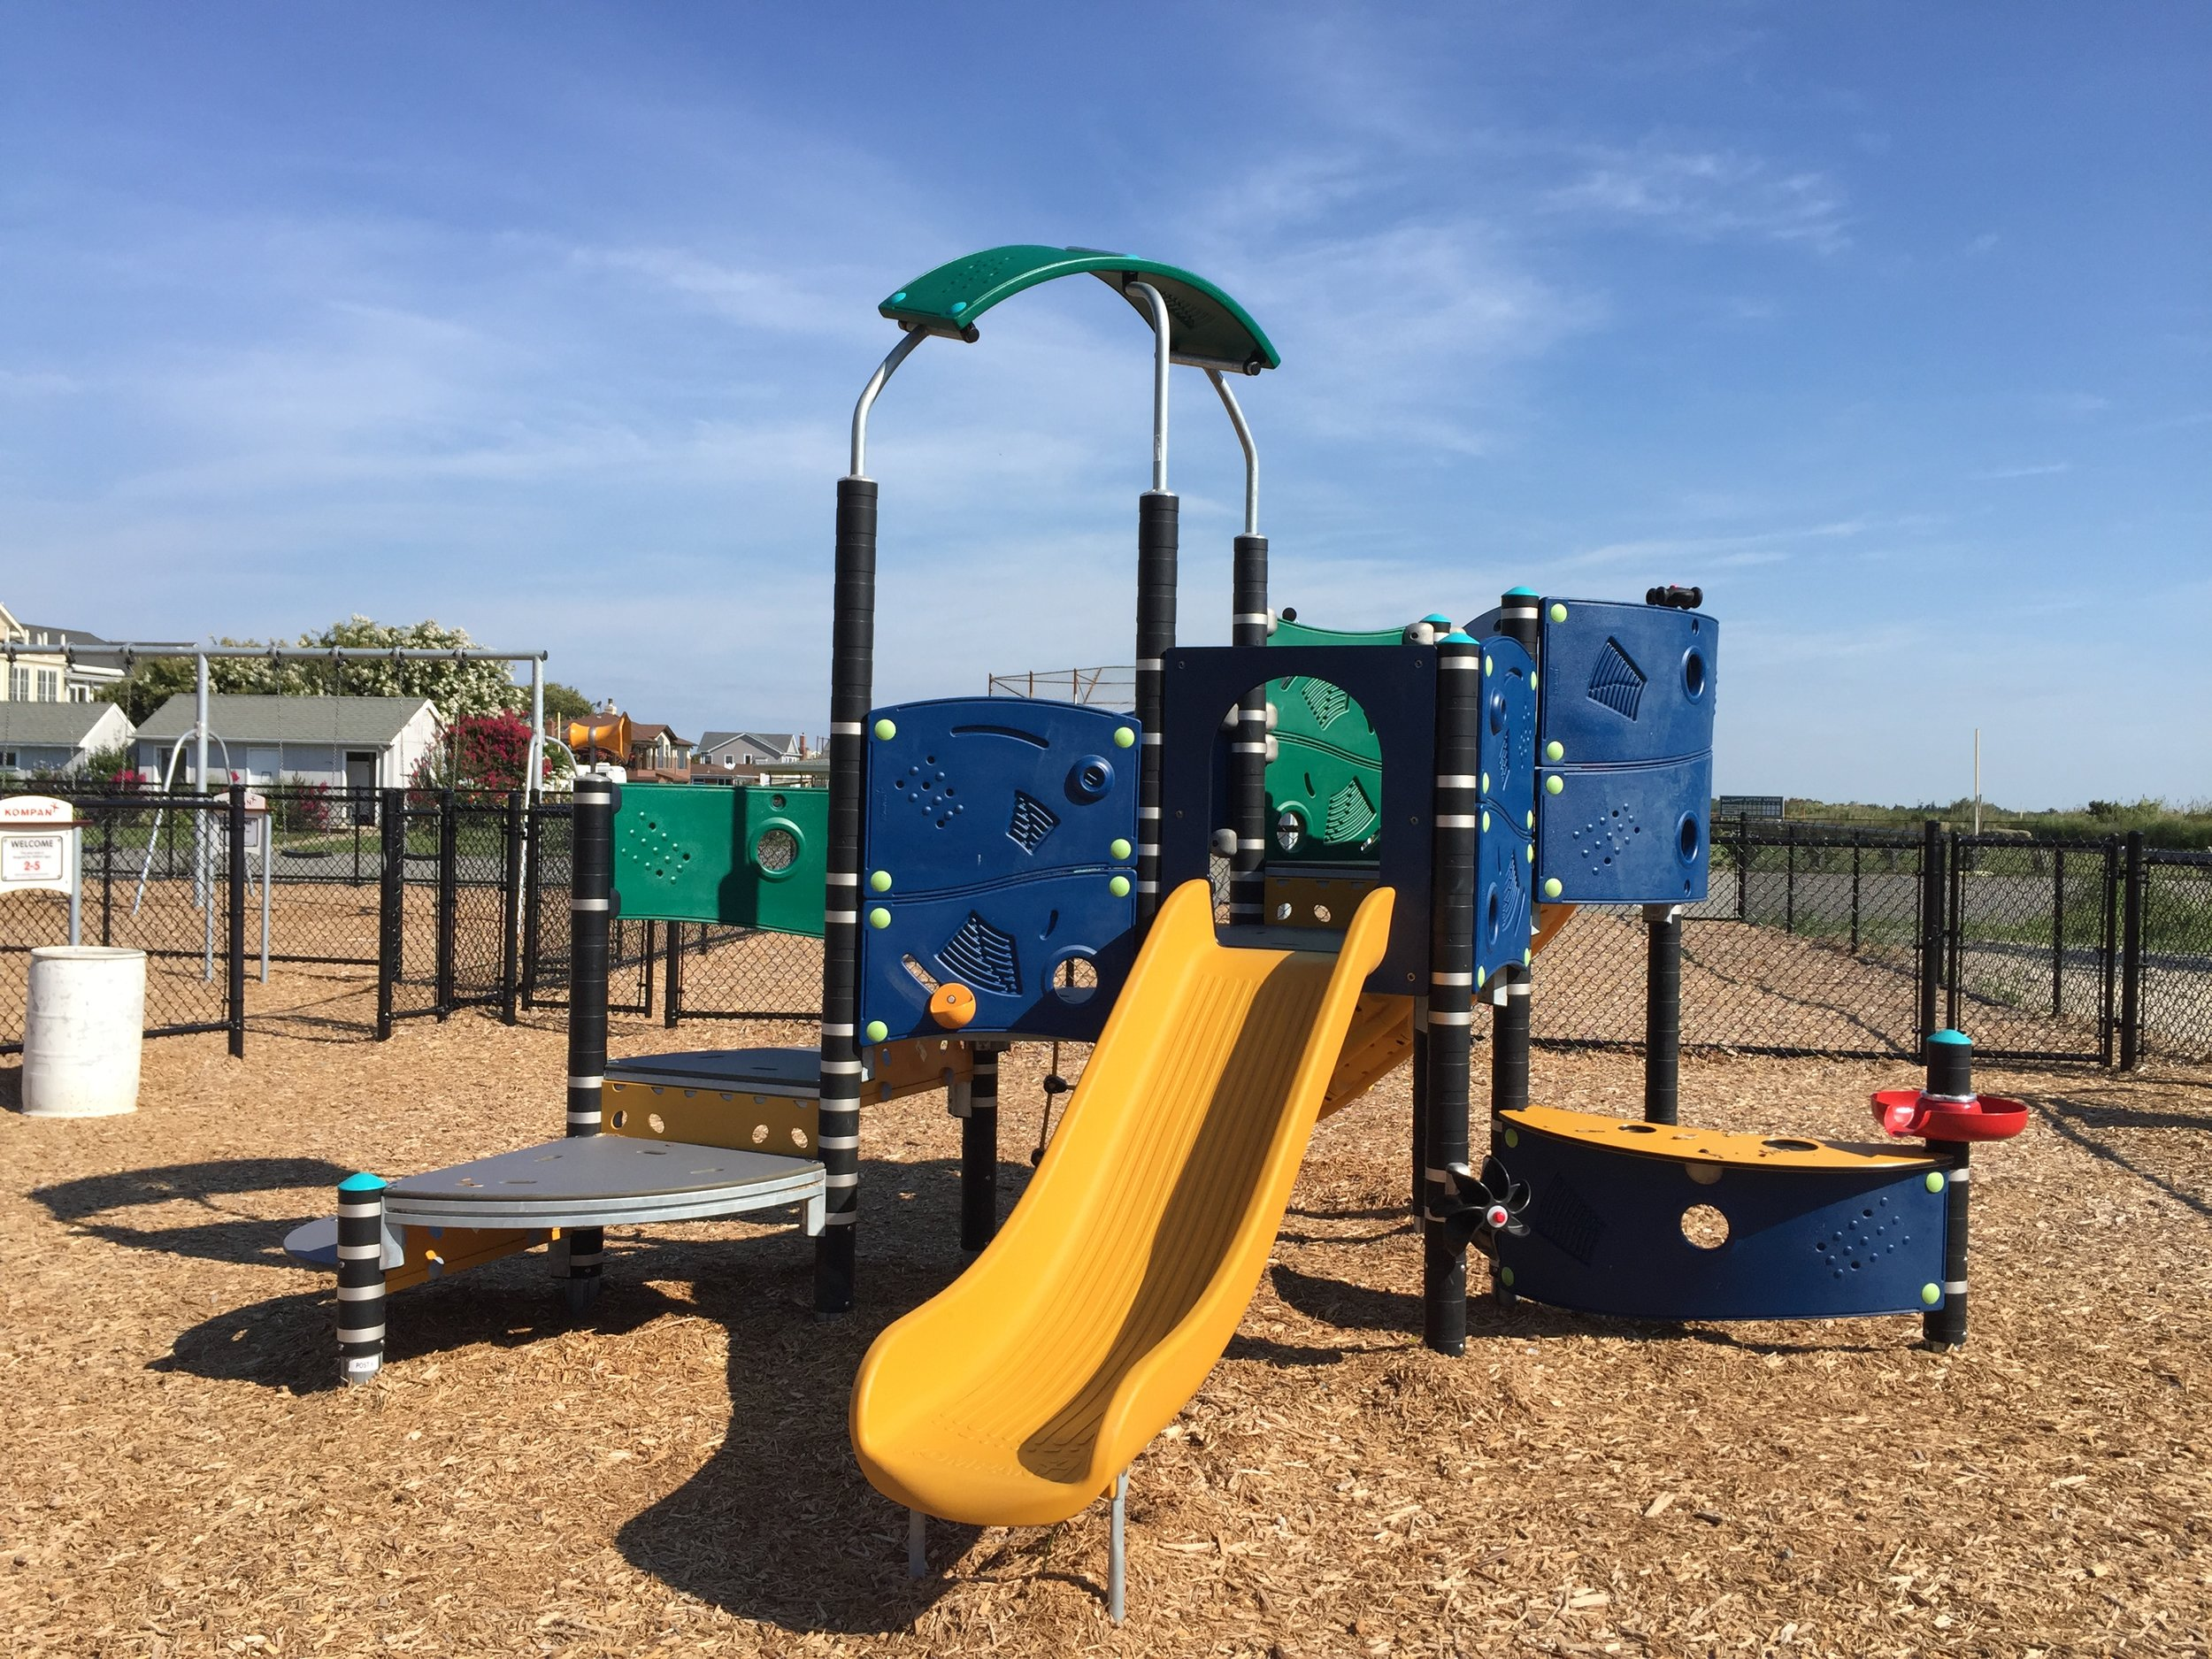 Playground at Point Lookout Park